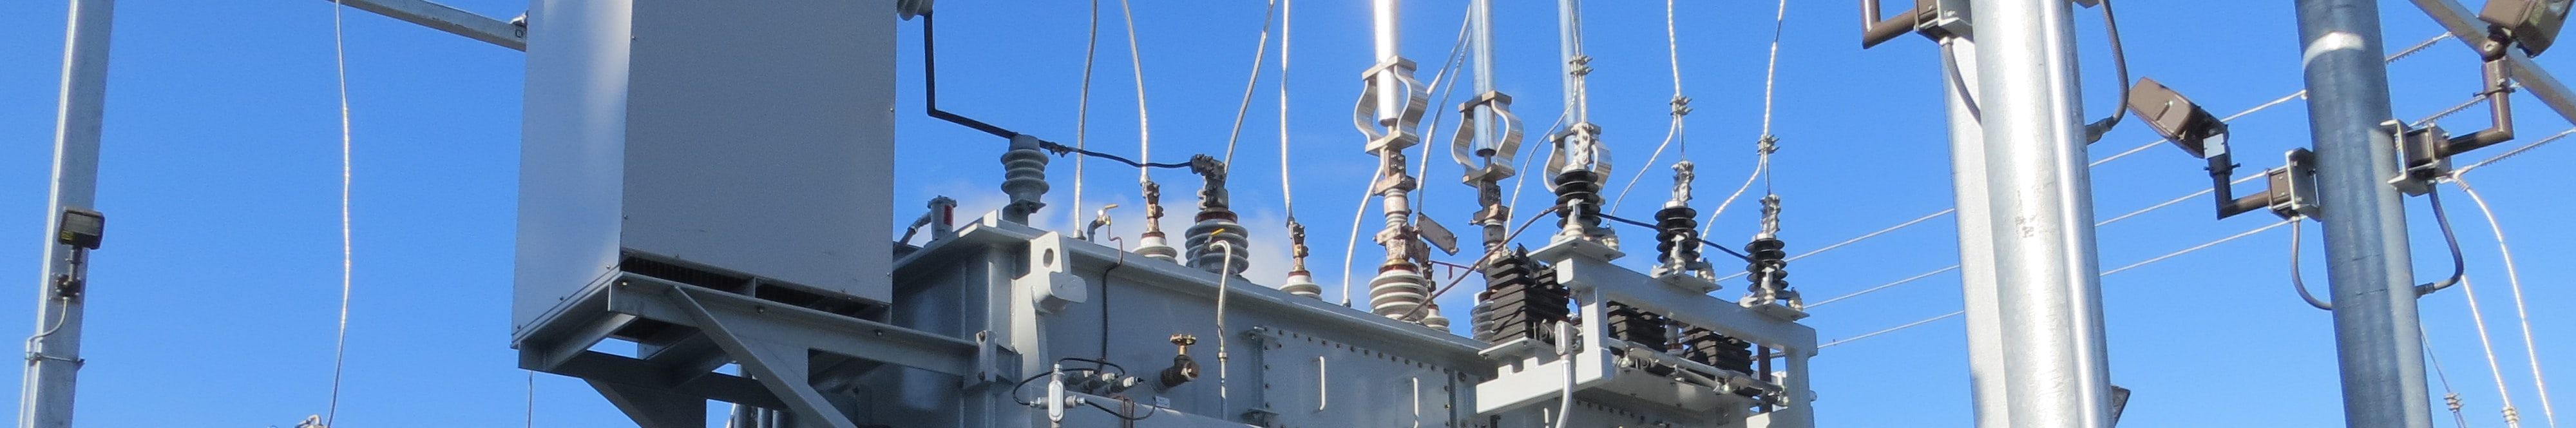 Kansai Electric provided 122.5 TWh of electricity to 13 million customers in Japan